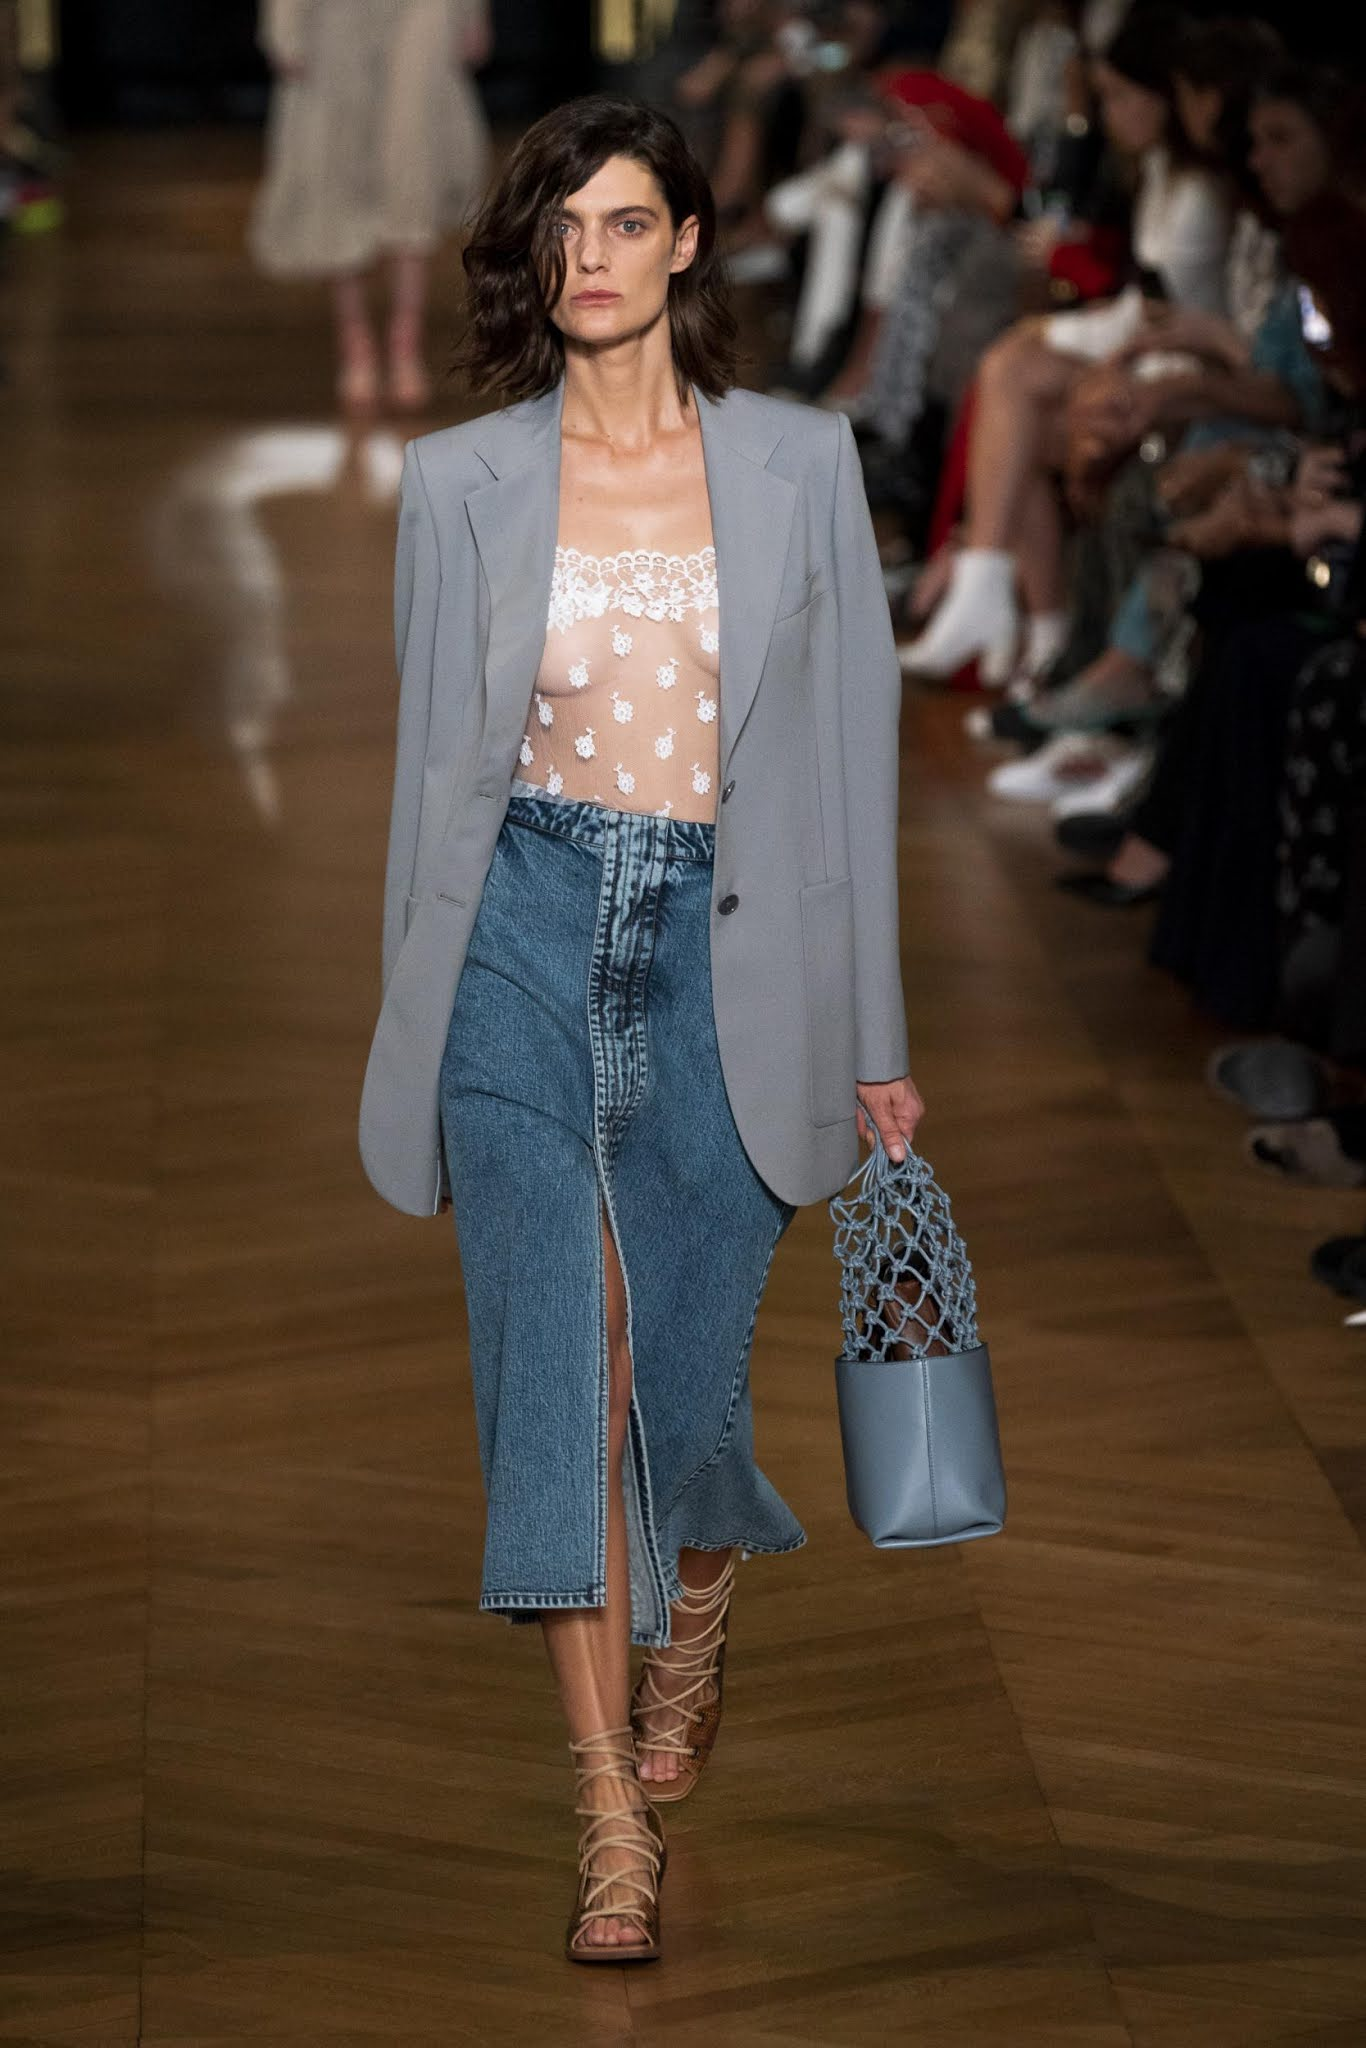 Popular Spring/Summer 2020 trends and how to shop them on budget.